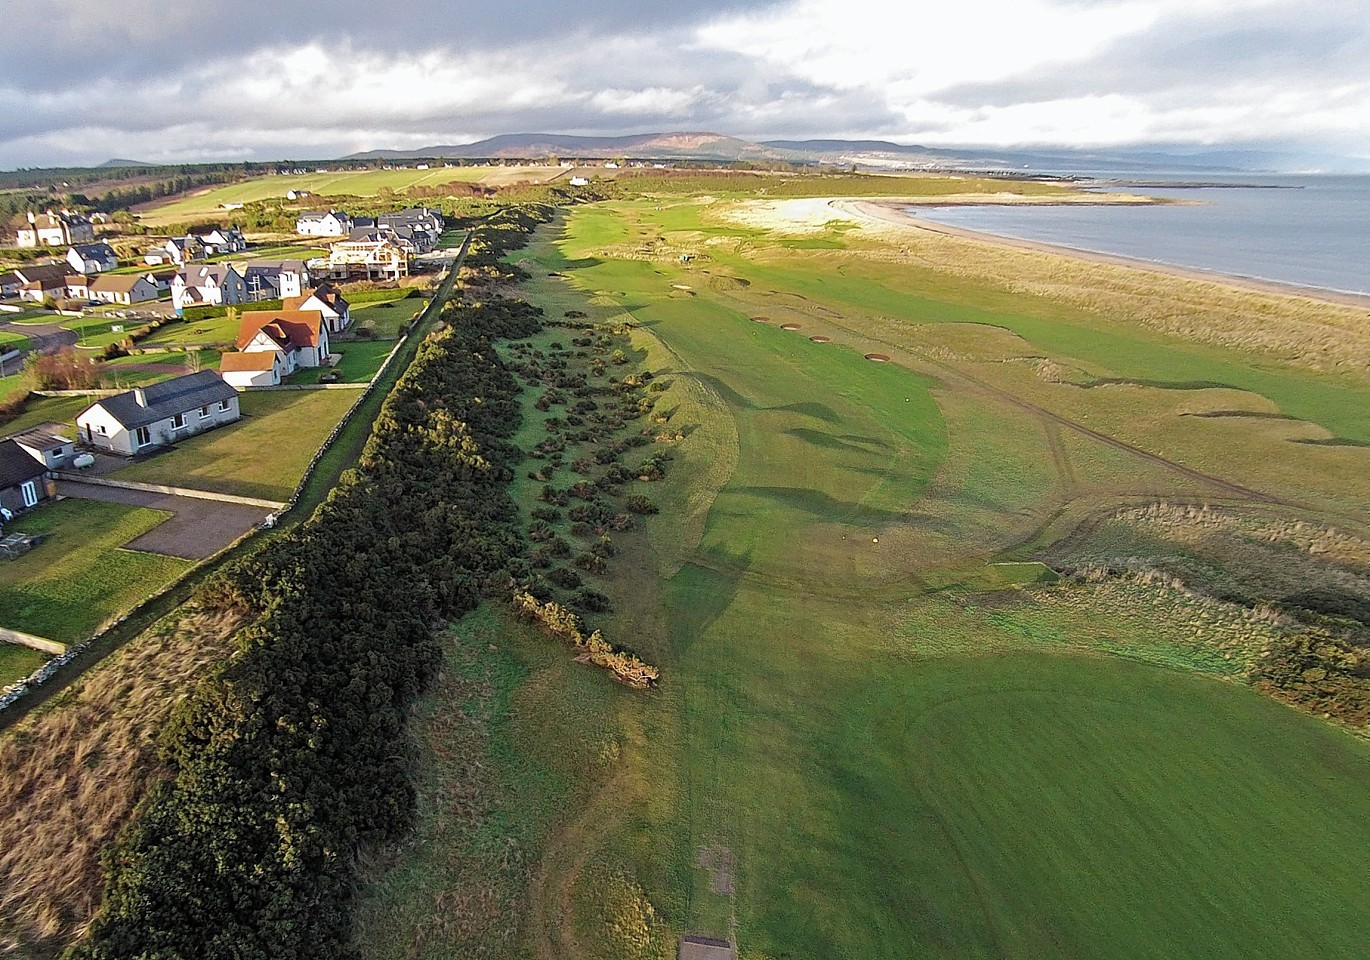 Royal Dornoch Golf Club has won permission for a new driving range